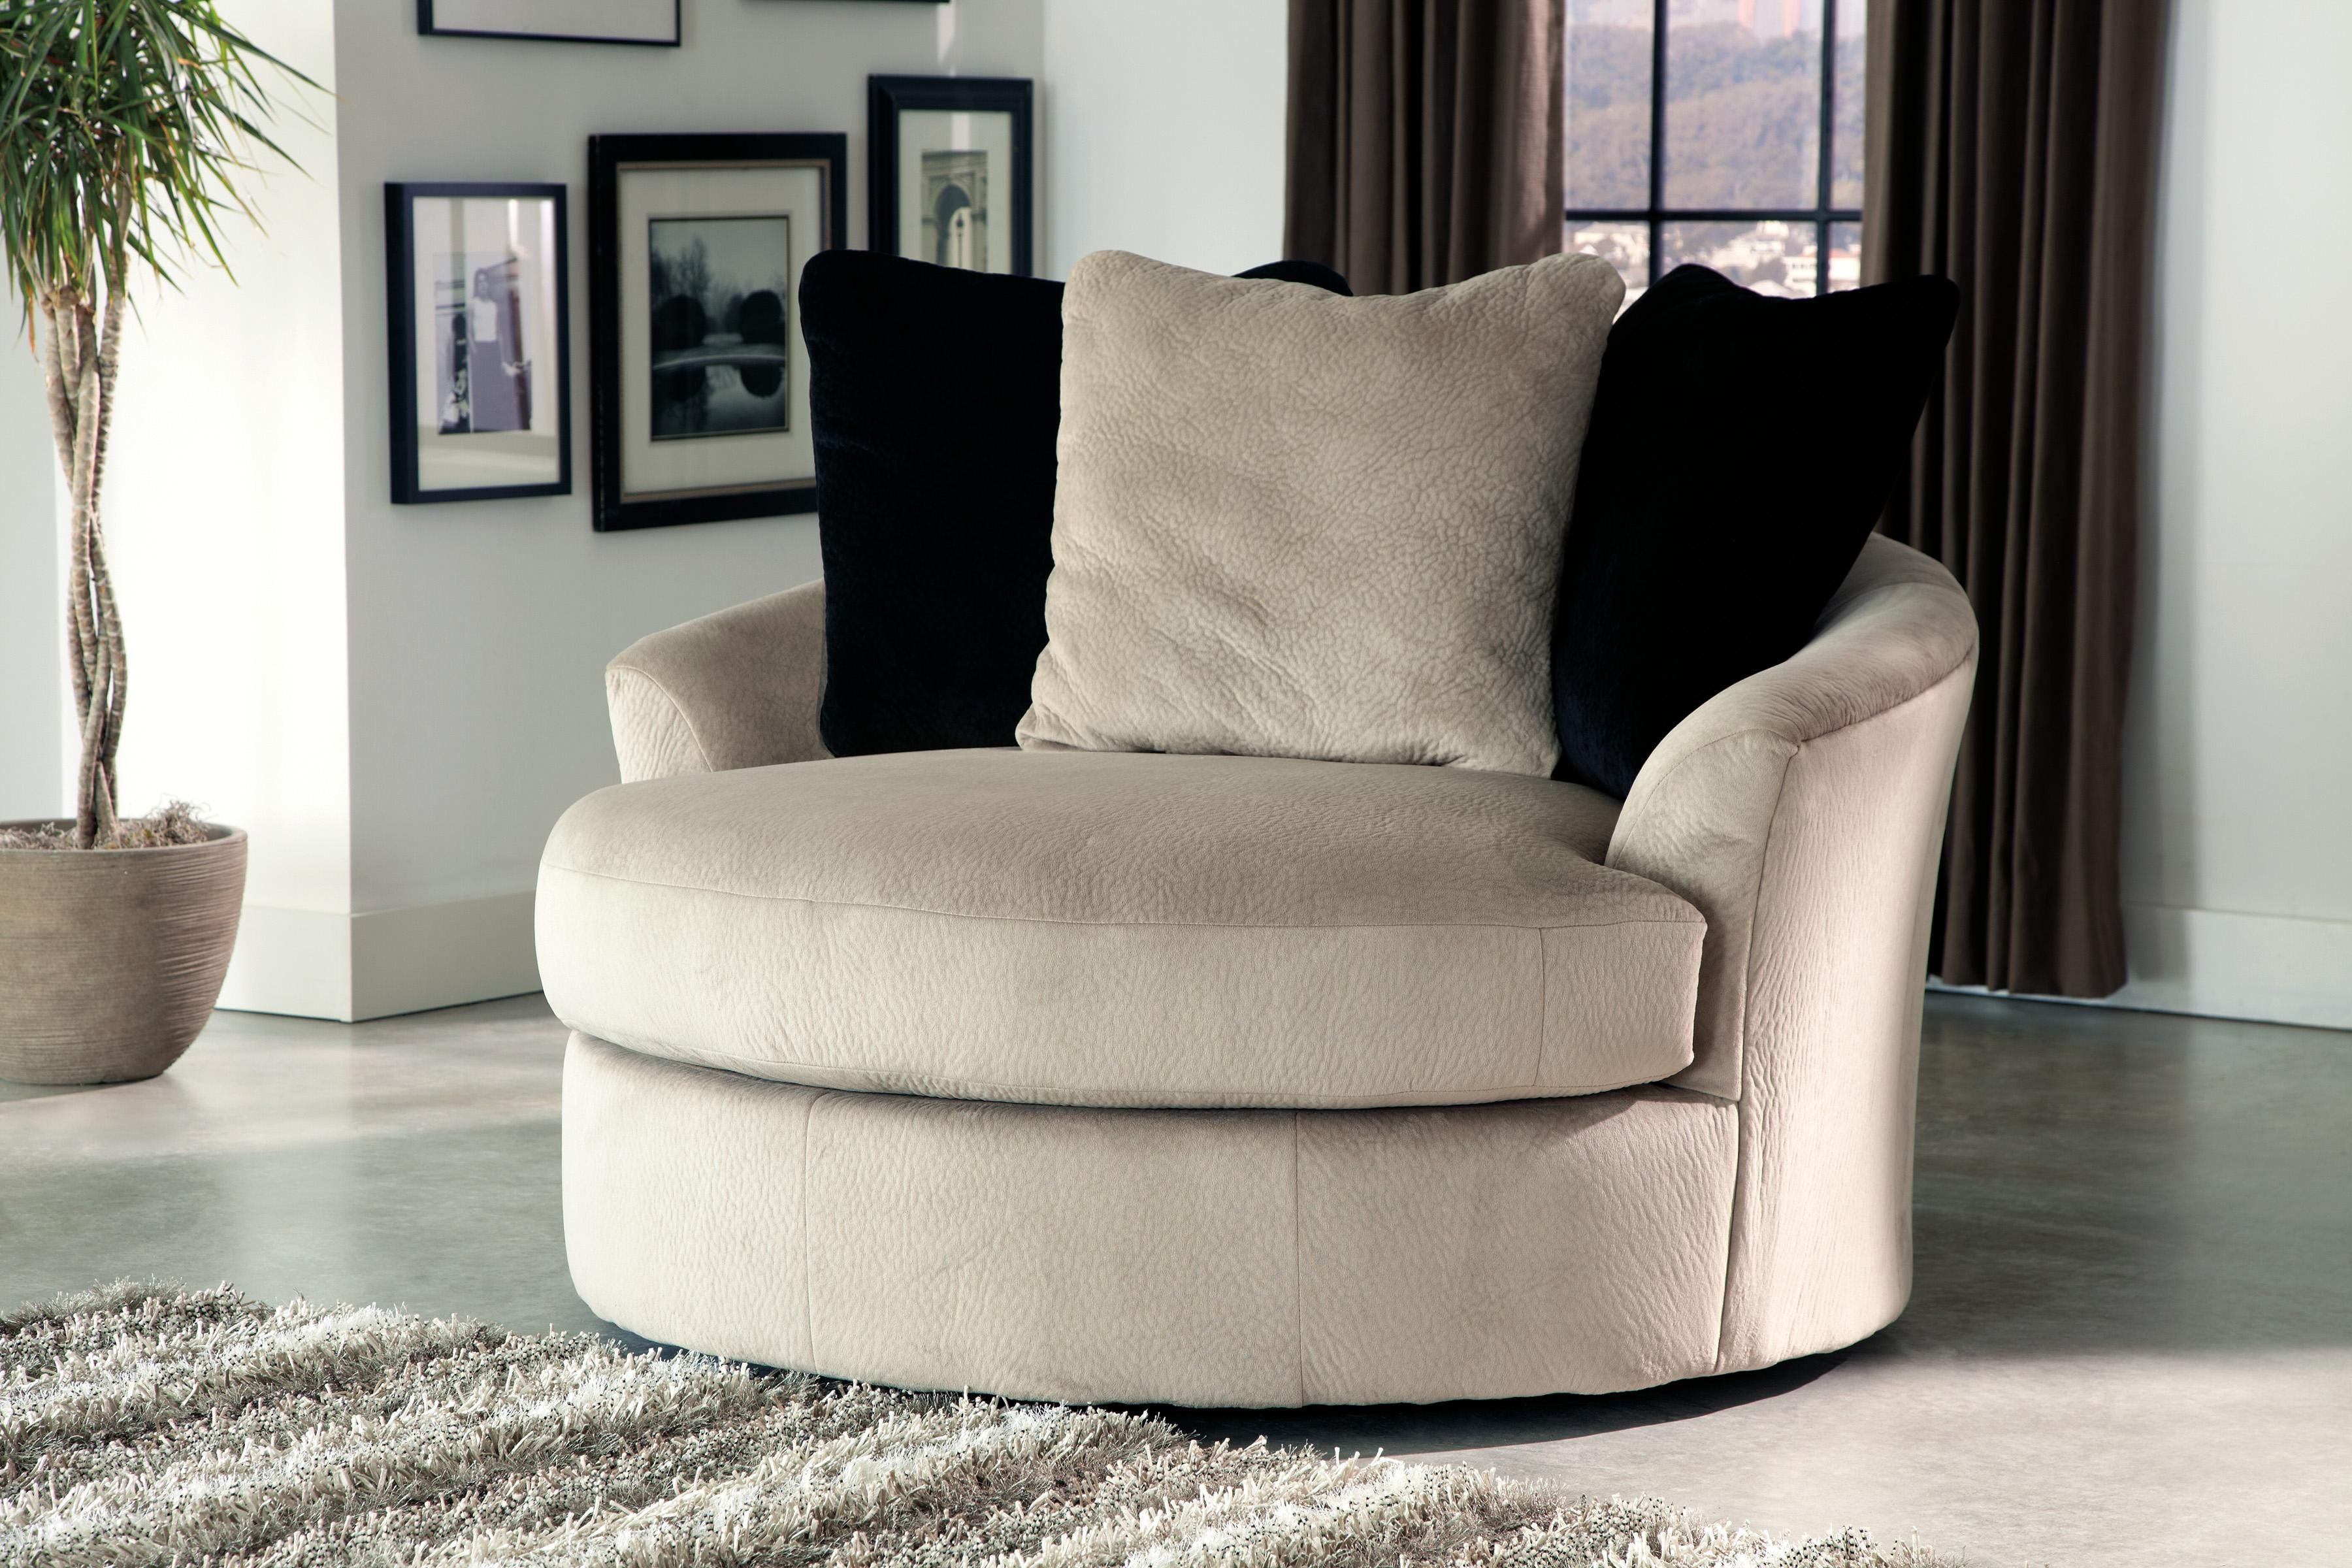 Oversized Swivel Chairs For Living Room Heflin Accent Chair By Signature Design Ashley Furniture At Sams